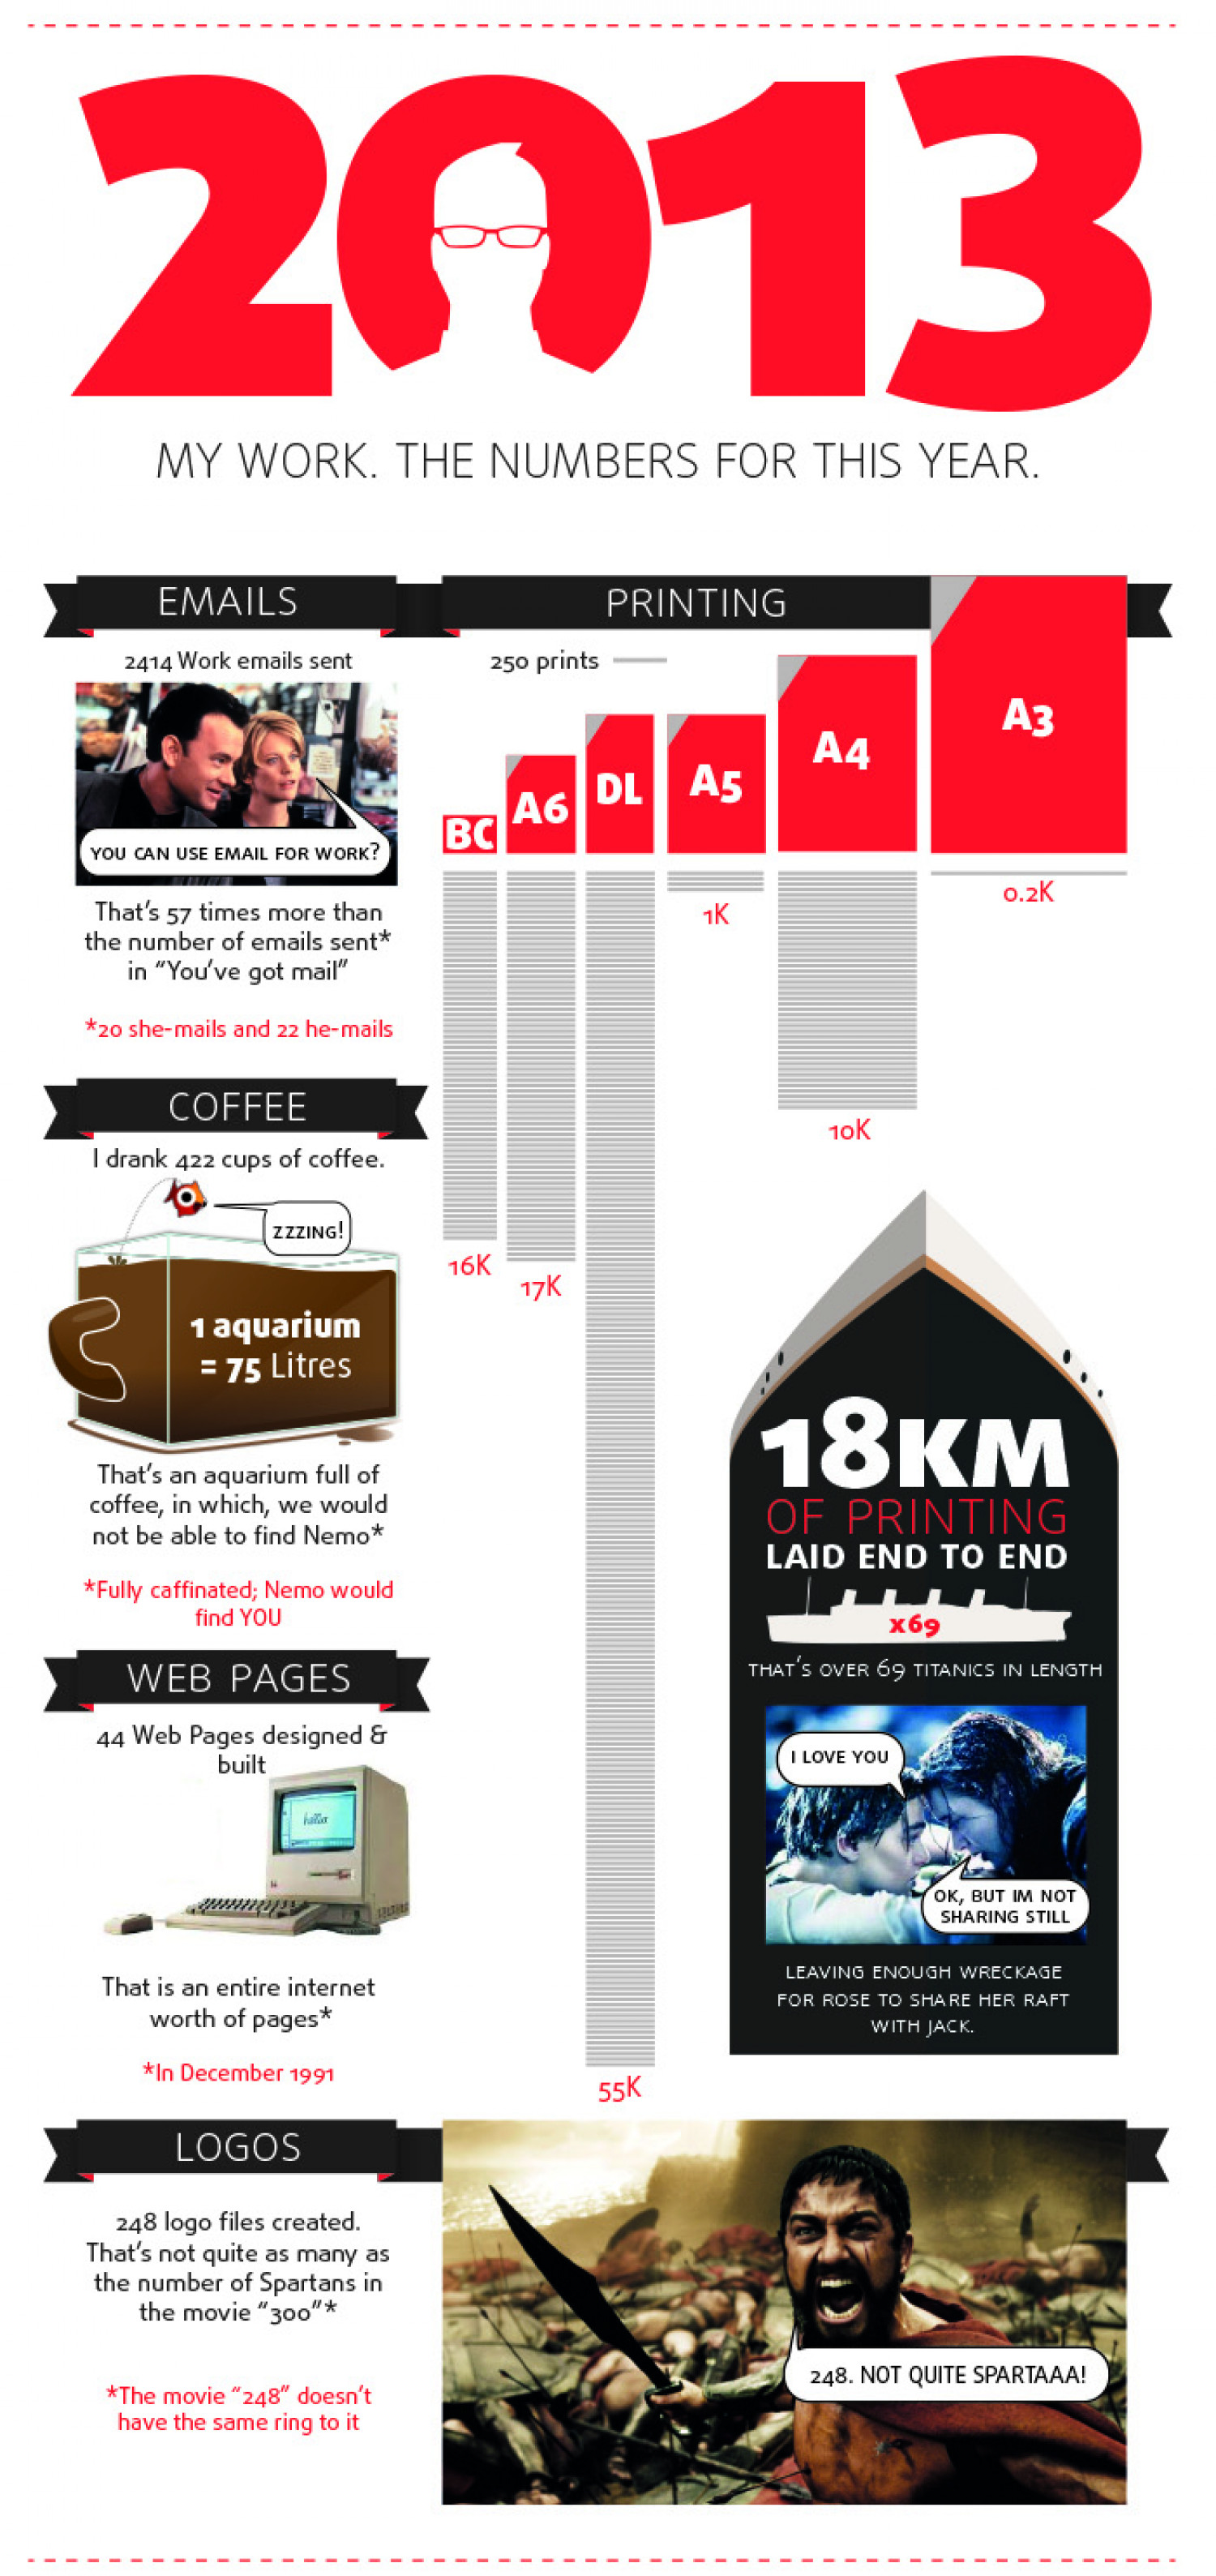 My work in 2013 Infographic